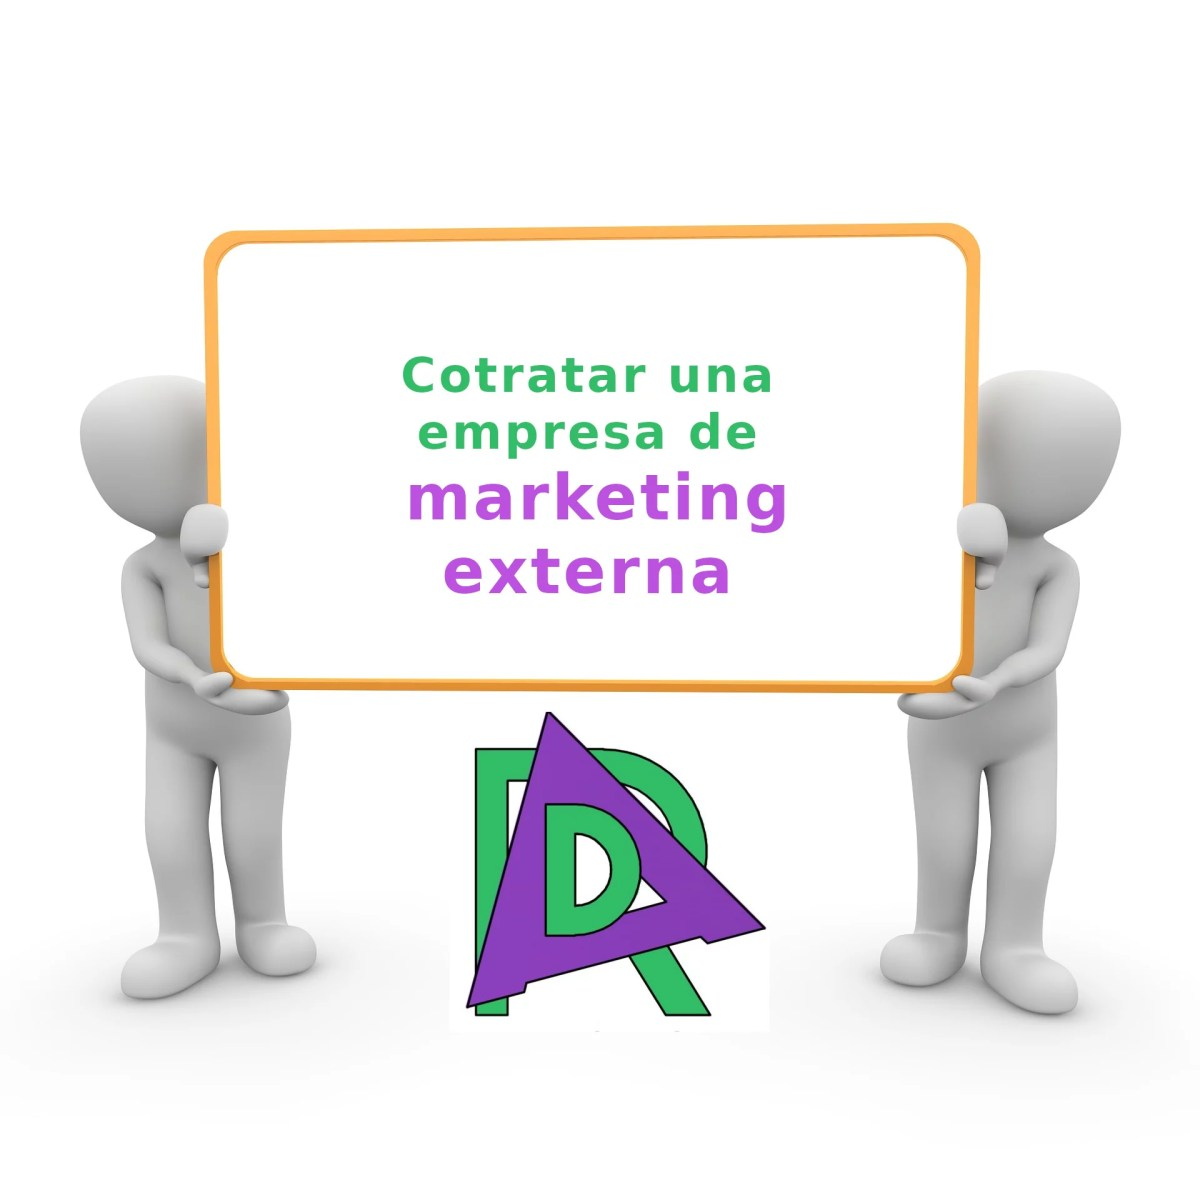 Contratar una empresa de marketing externa para tu negocio